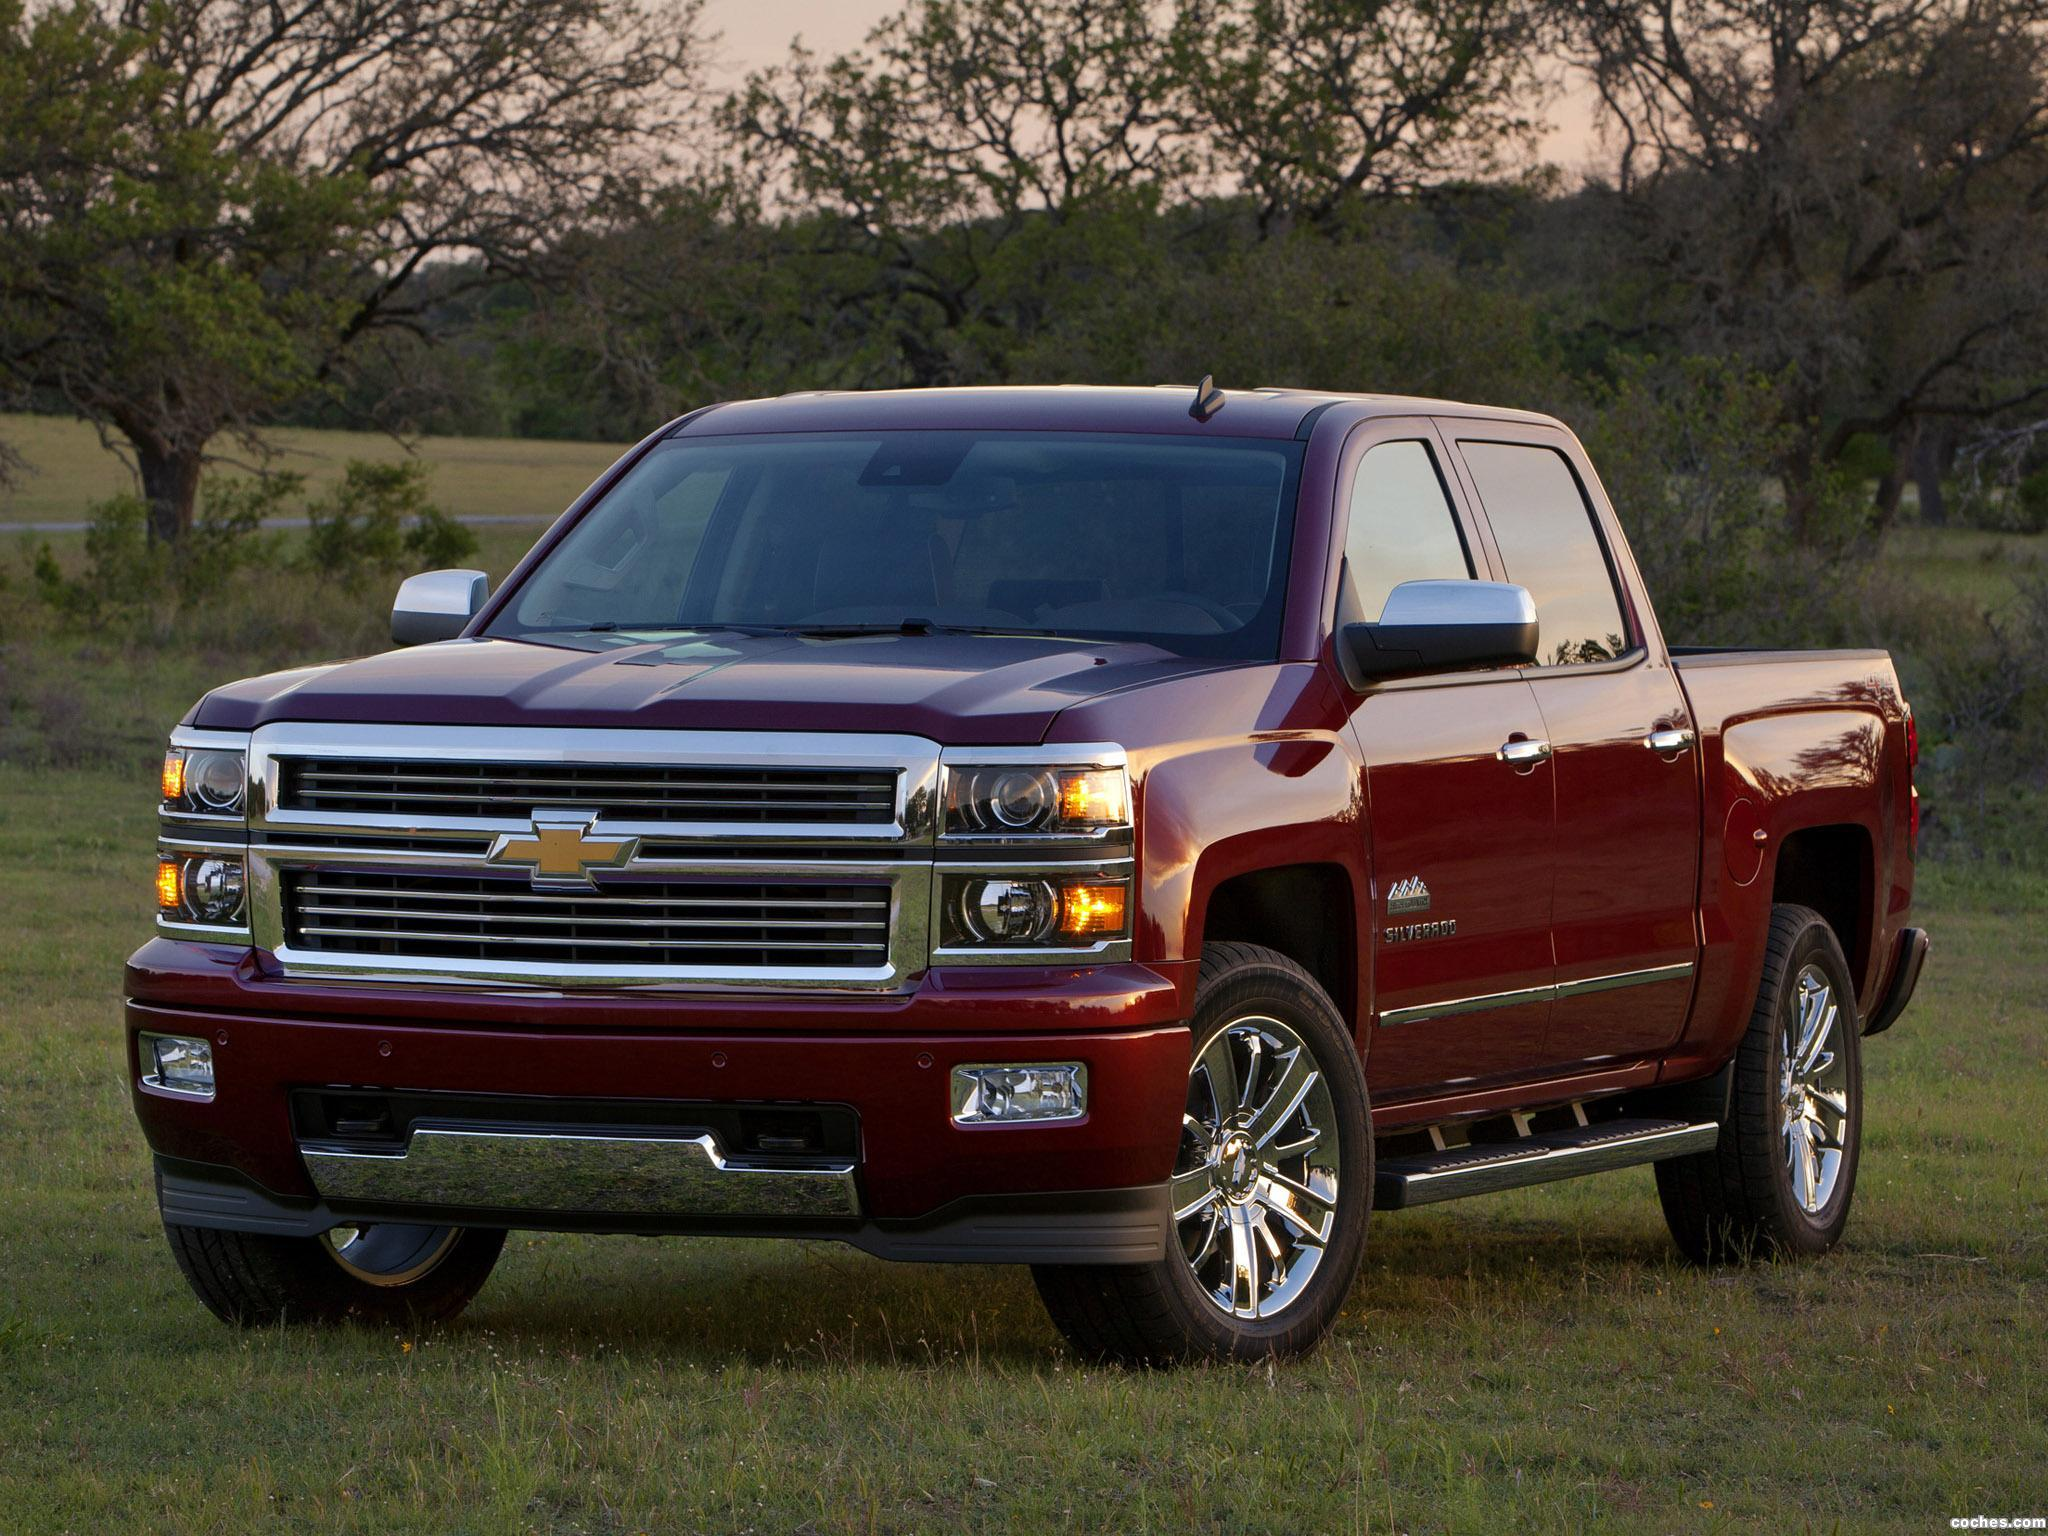 Foto 7 de Chevrolet Silverado High Country Crew Cab 2013